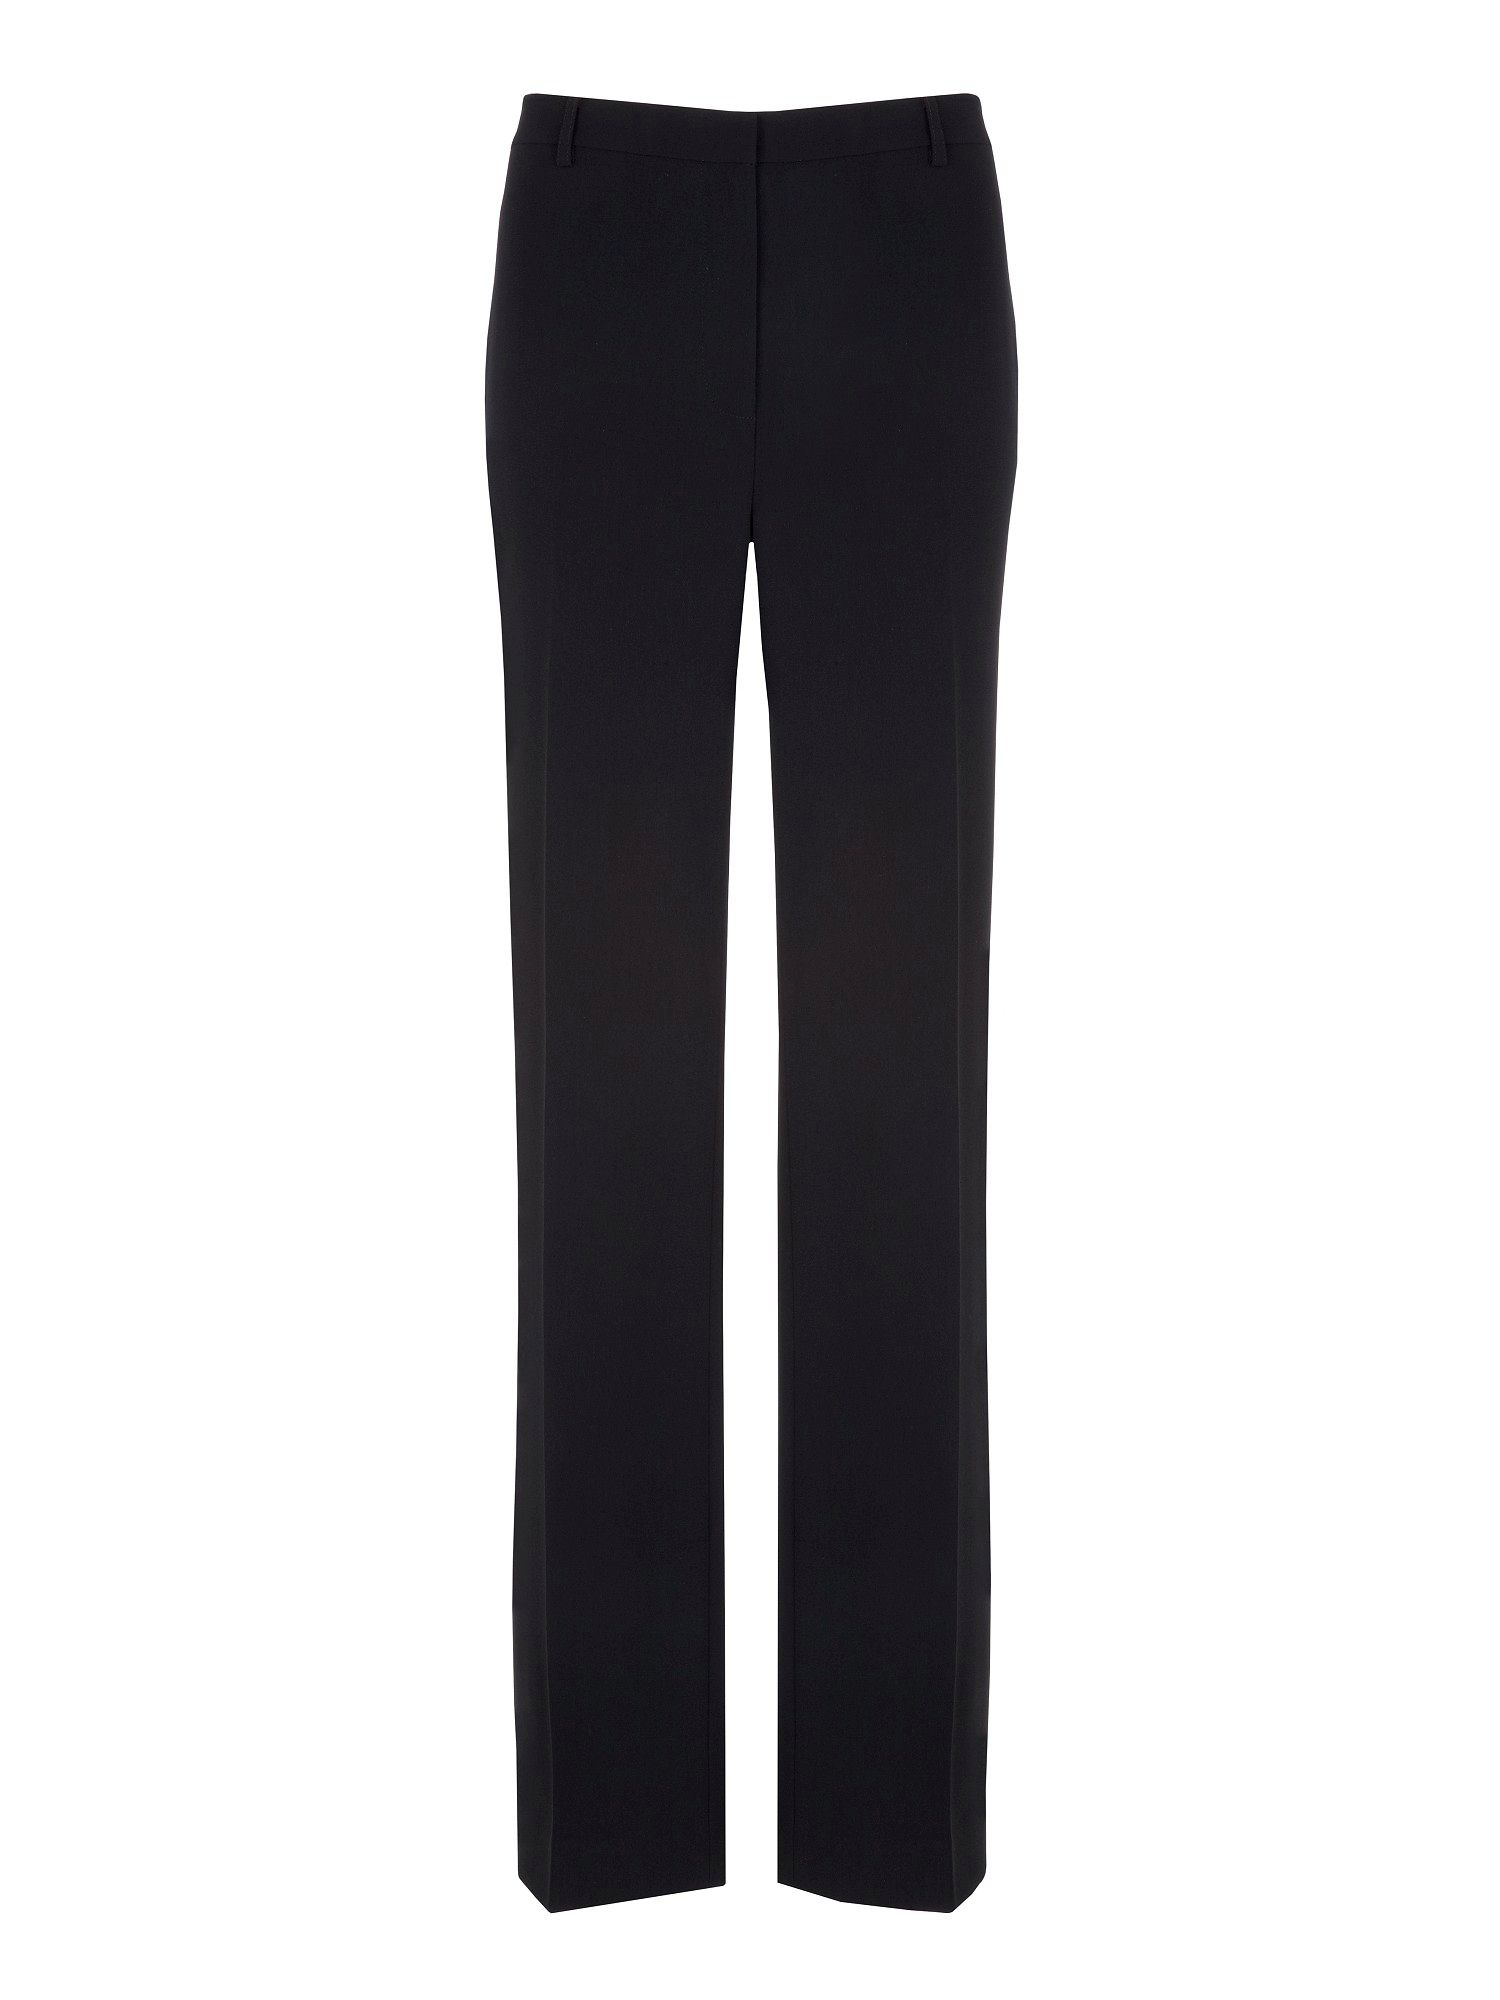 Crepe straight leg trouser